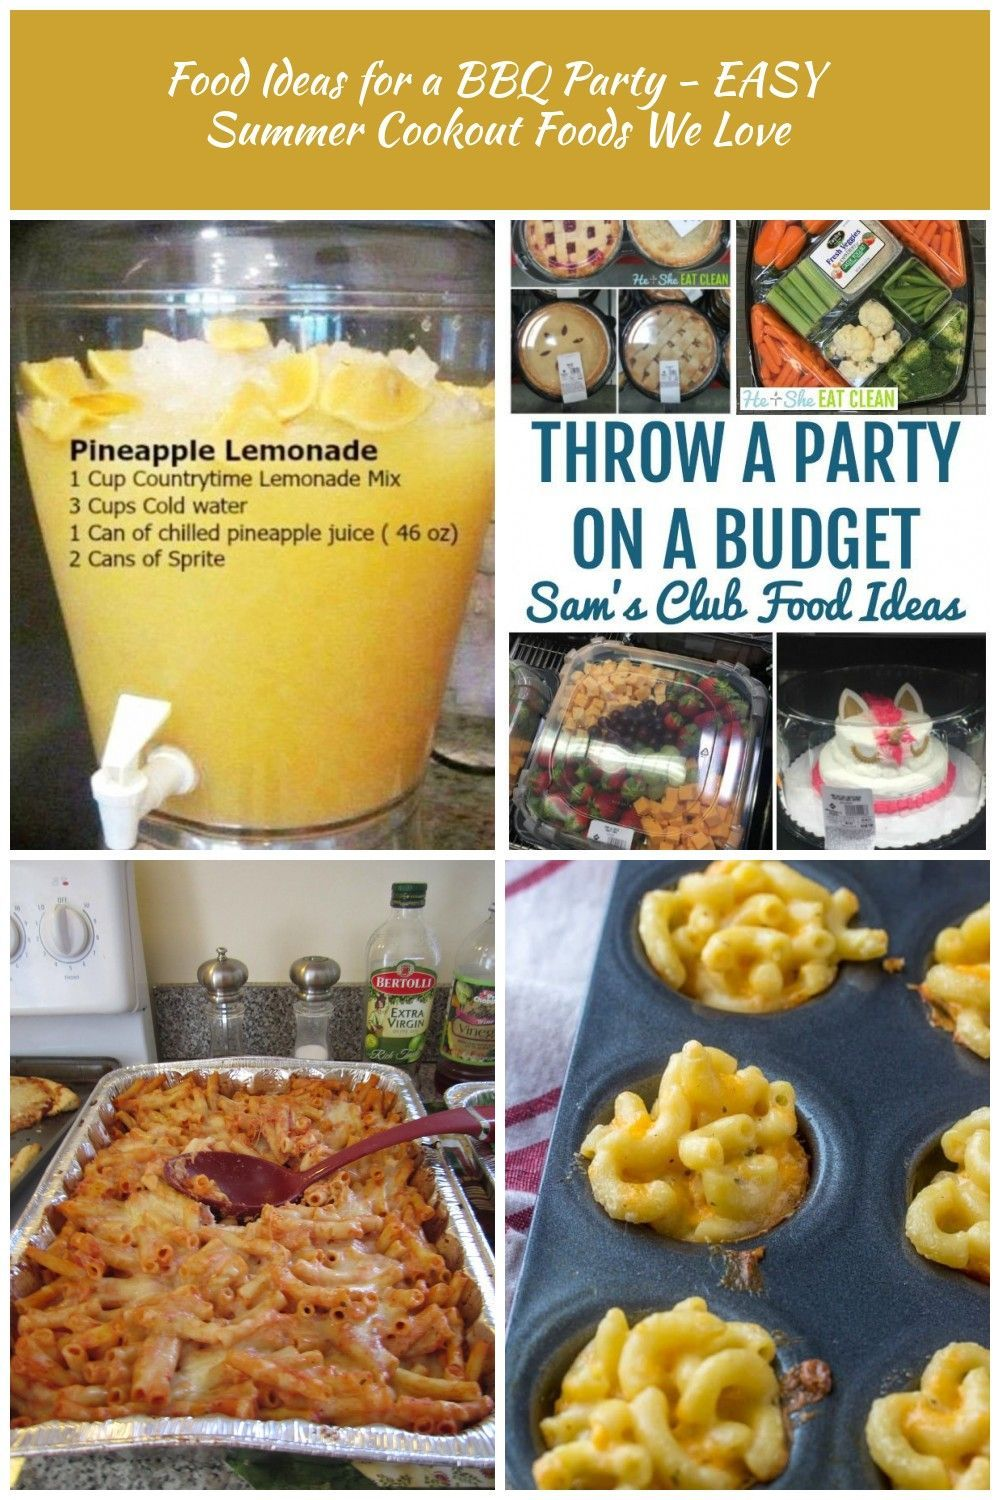 Punch and Lemonade Drink Recipes for a Crowd or party - ST1122019 - Hey Moms, having a birthday party, baby shower, cookout or holiday party?  This Pineapple lemonade is SO cheap and easy to make and is a CROWD pleaser Cheap Party food Food Ideas for a BBQ Party - EASY Summer Cookout Foods We Love #pineapplelemonade Punch and Lemonade Drink Recipes for a Crowd or party - ST1122019 - Hey Moms, having a birthday party, baby shower, cookout or holiday party?  This Pineapple lemonade is SO cheap and #pineapplelemonade